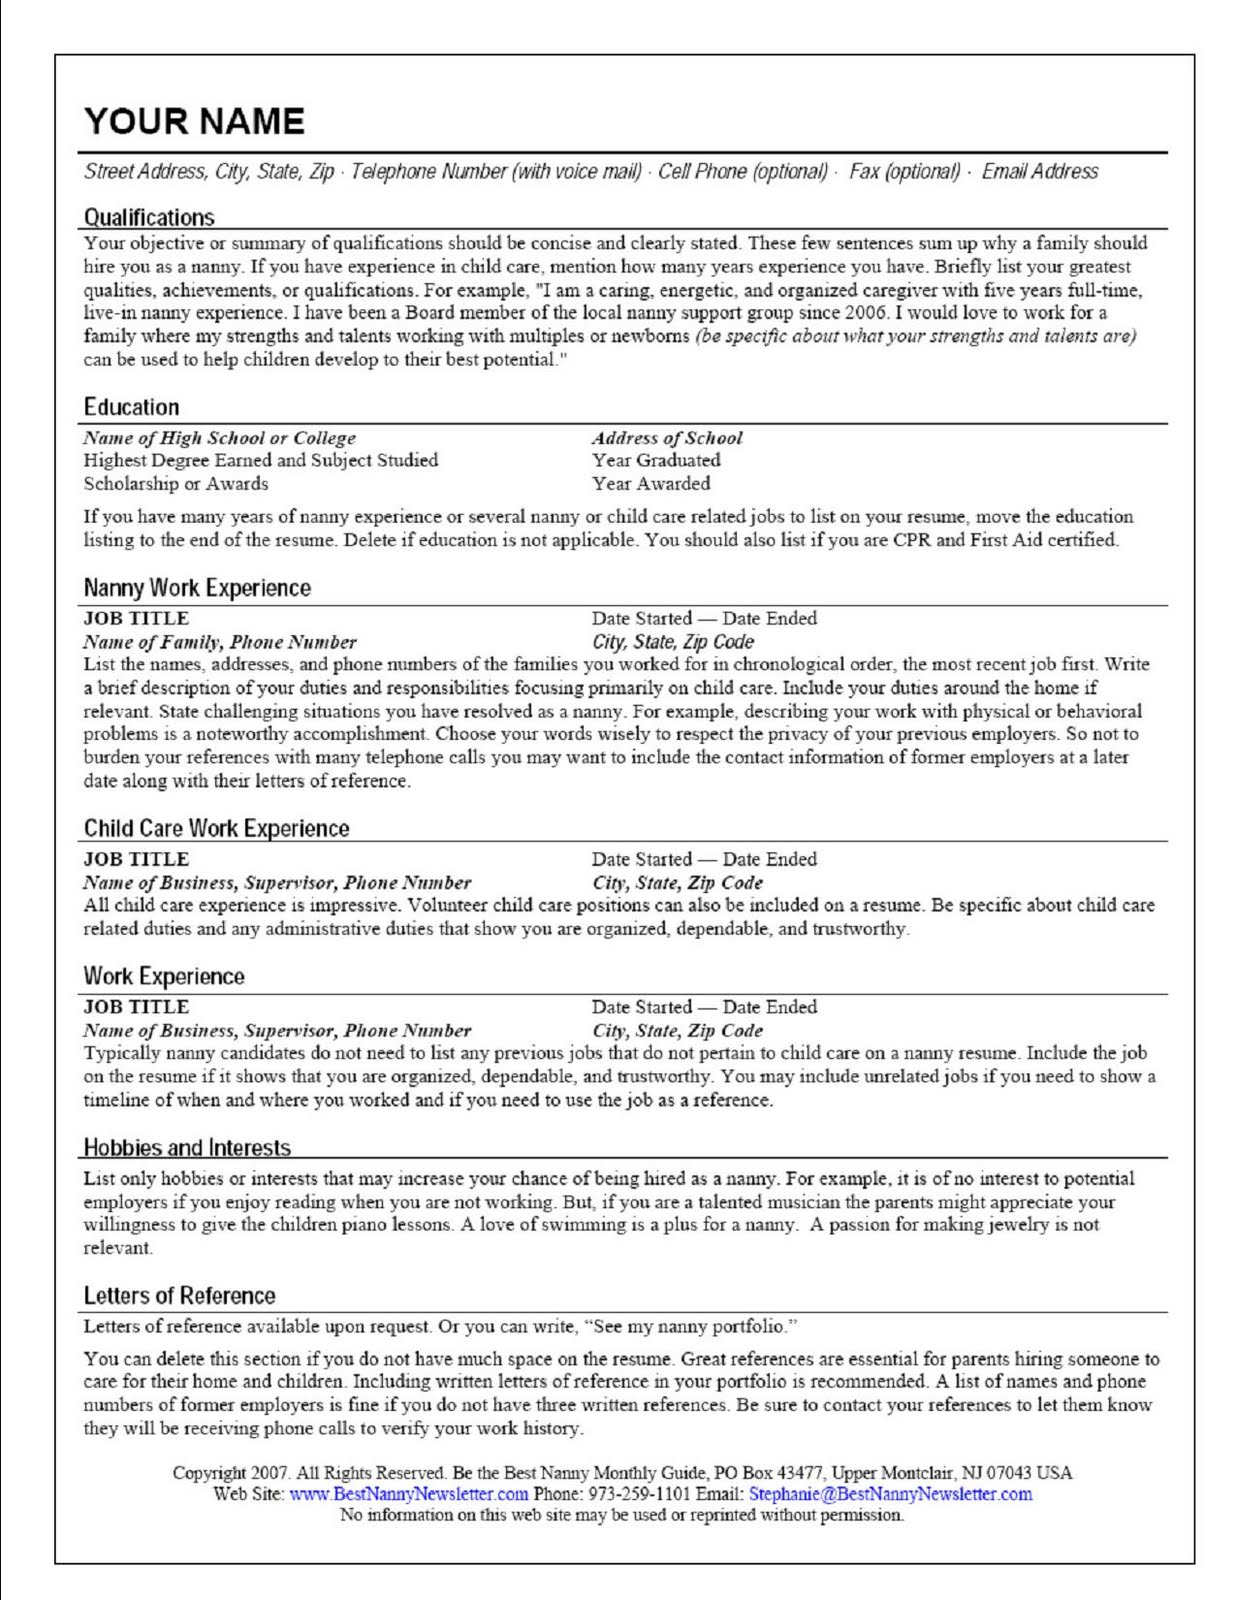 Canada Jobs Post Resume sample of nanny in canada